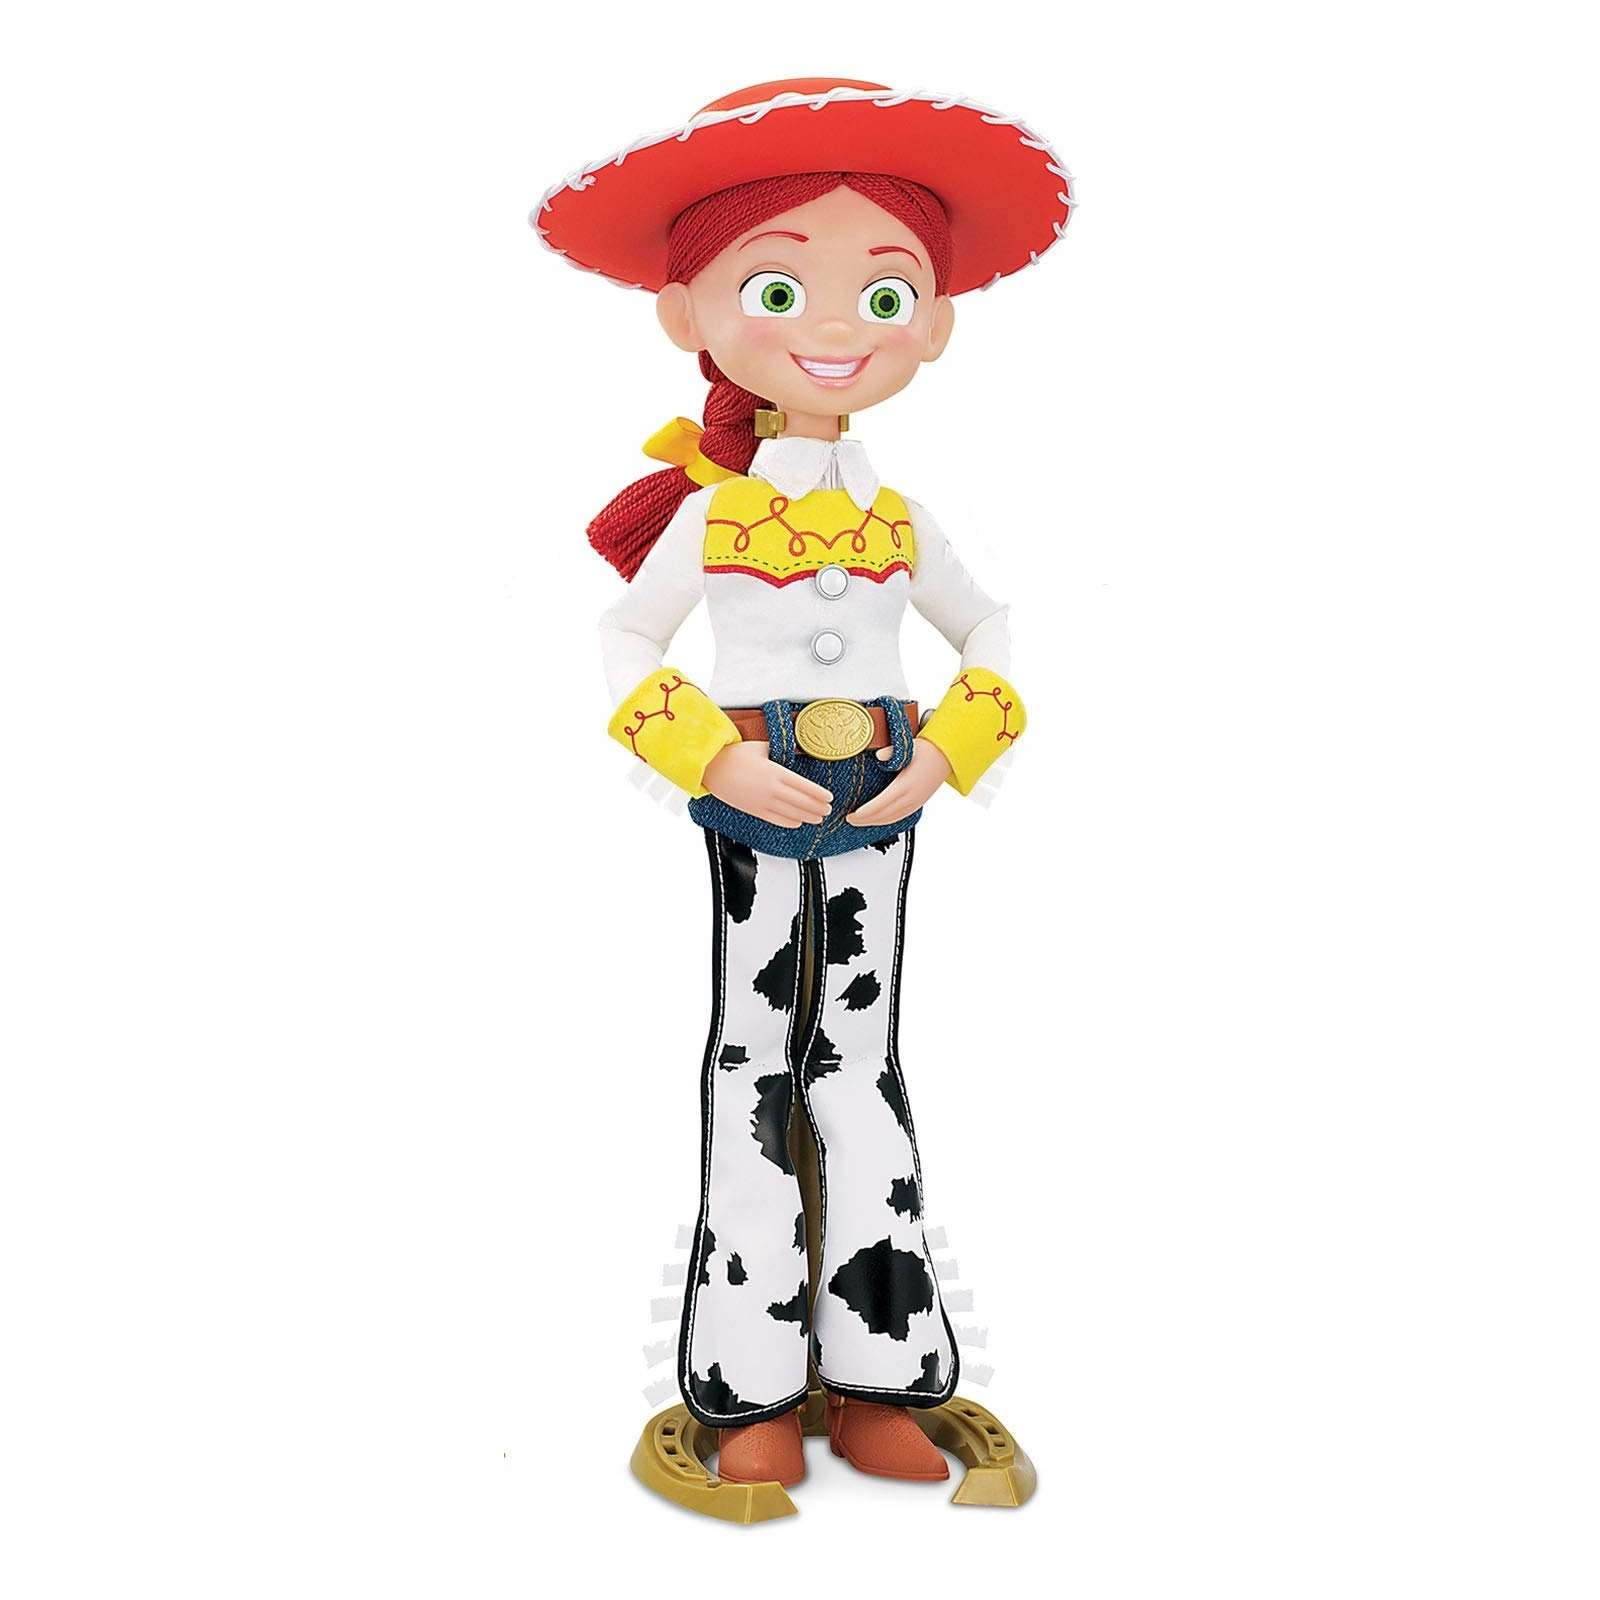 Signature Collection: Toy Story - Jessie The Yodelling Cowgirl Photo